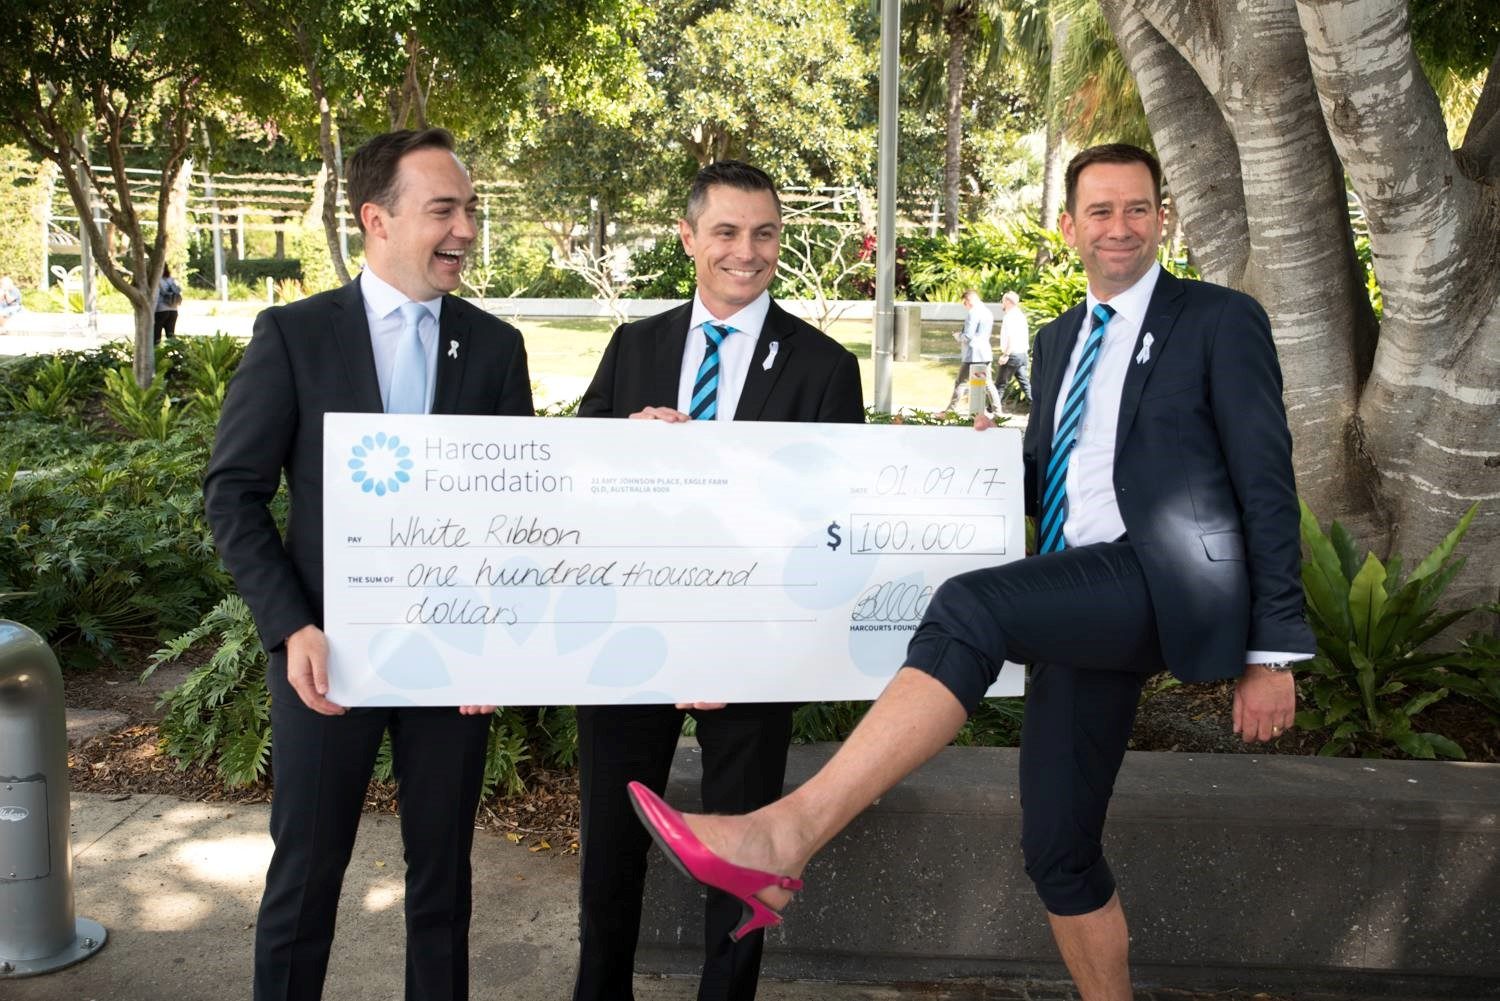 Walk A Mile in Their Shoes 2017 Raises $100,000